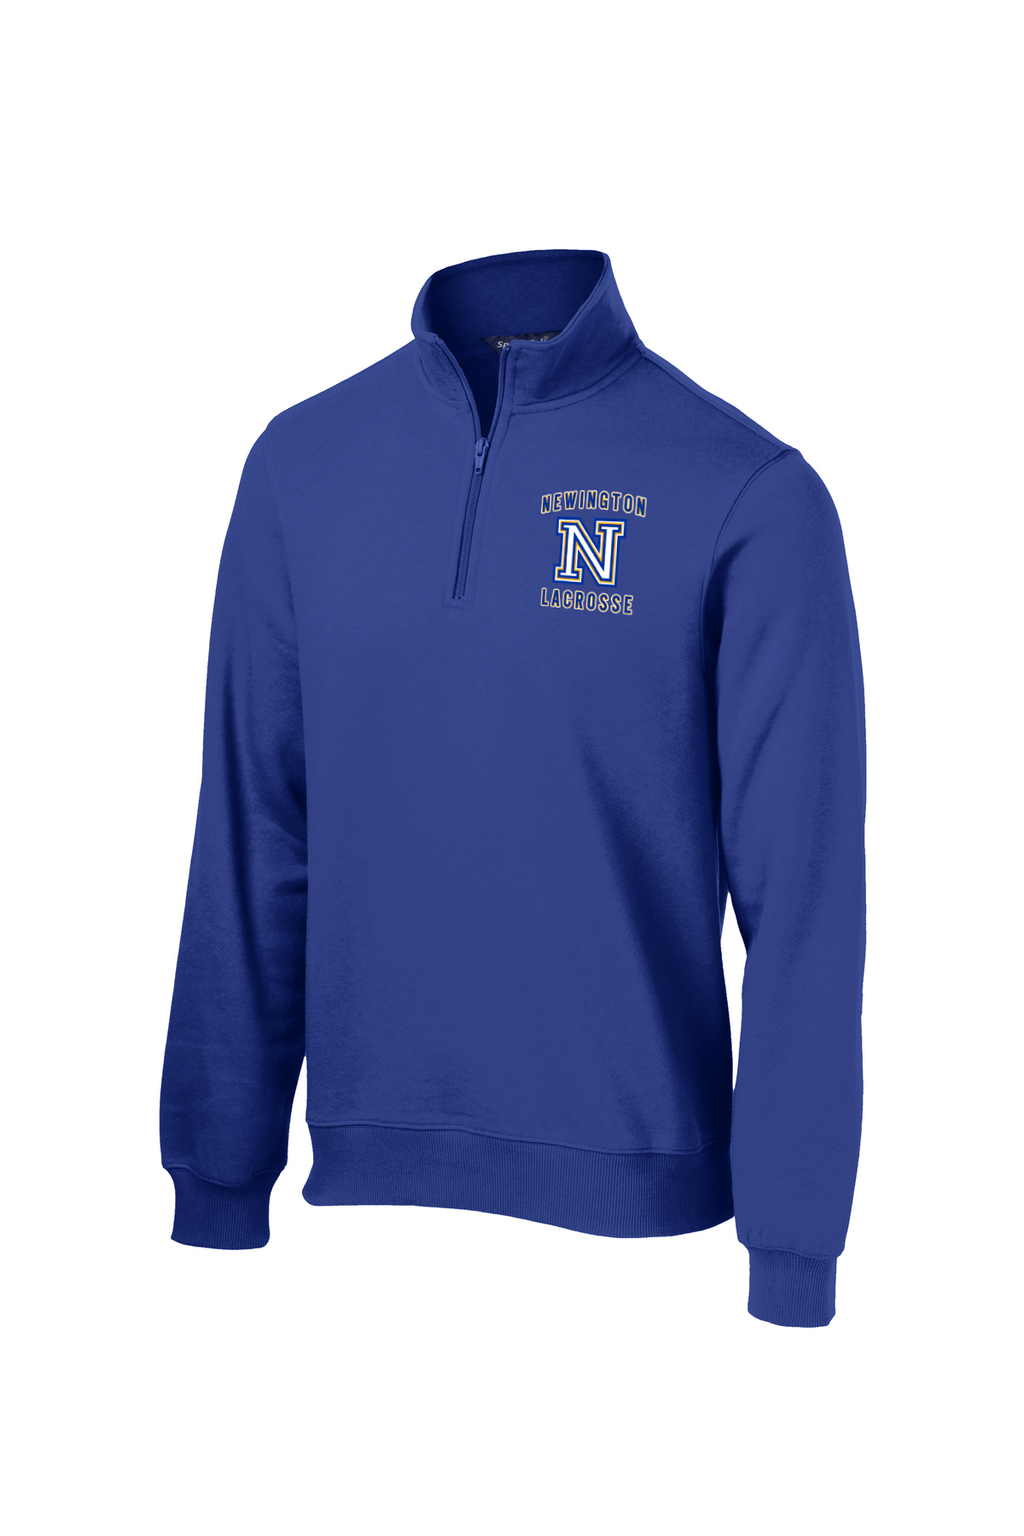 Newington Lacrosse Royal 1/4 Zip Fleece